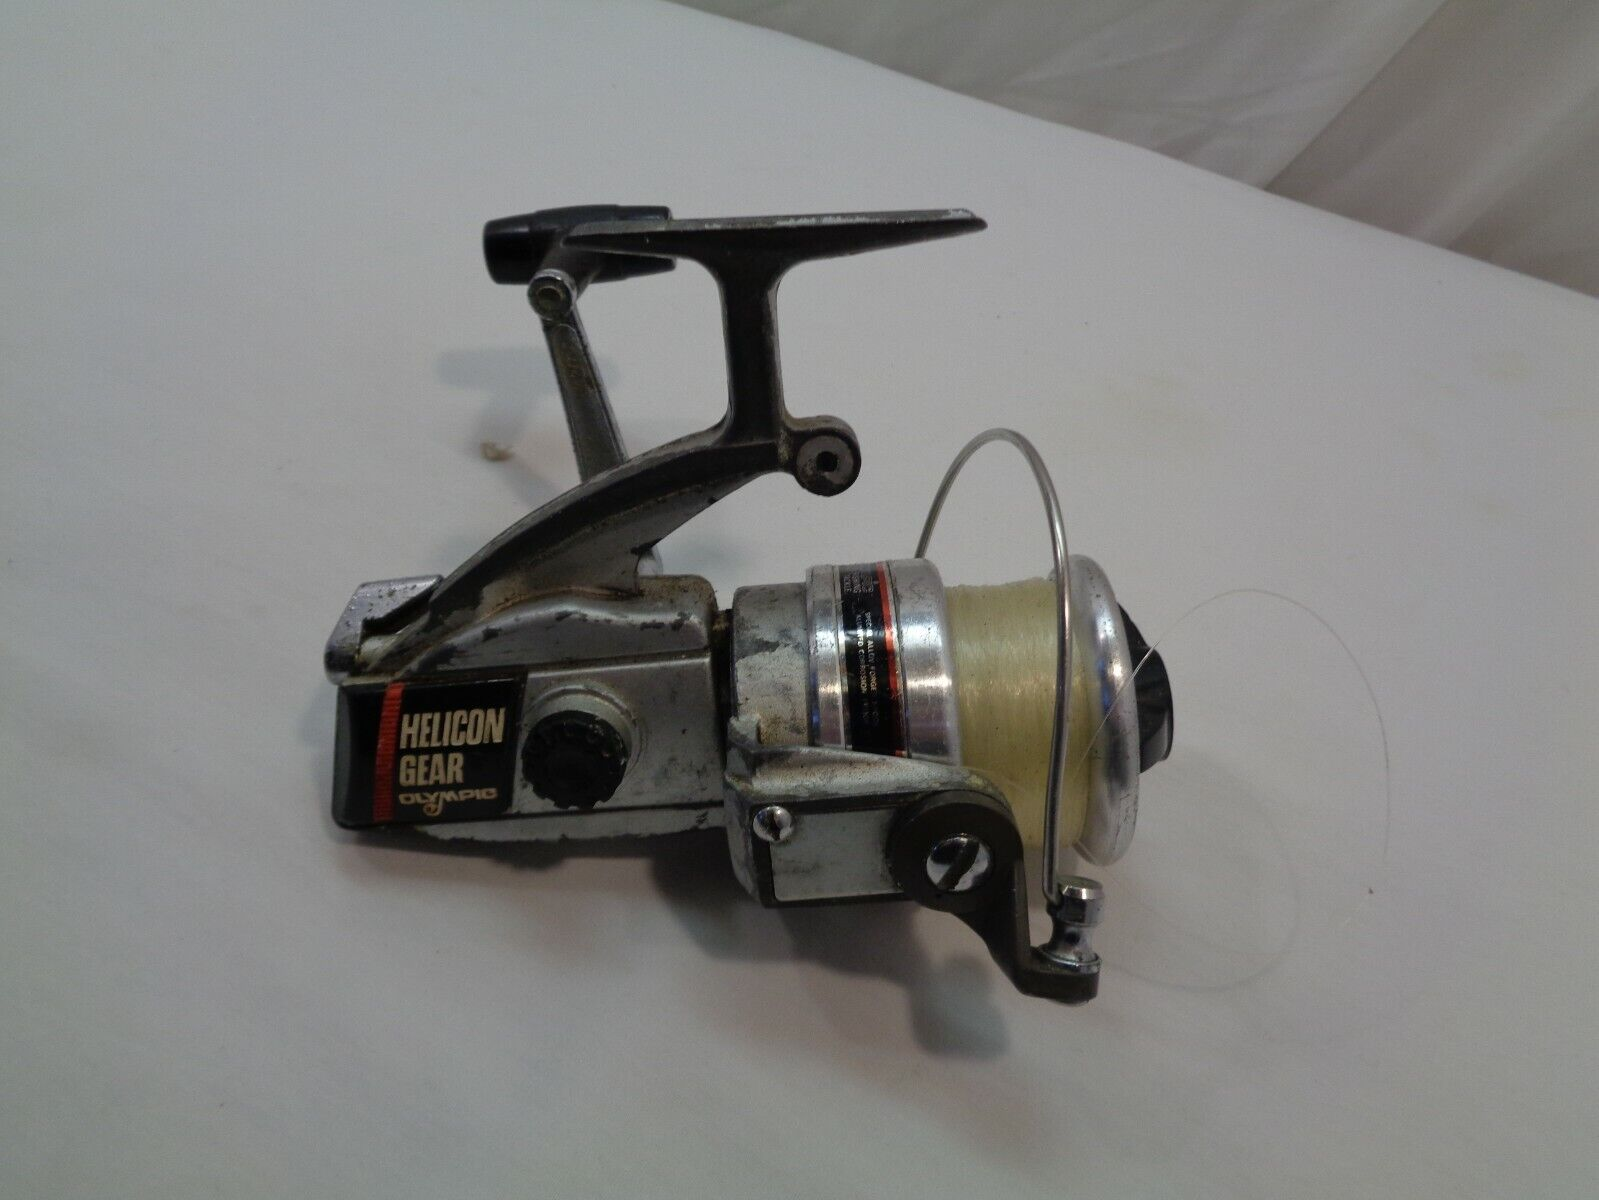 OLYMPIC HELICON GEAR LG-300VO SPINNING FISHING REEL  - $6.99